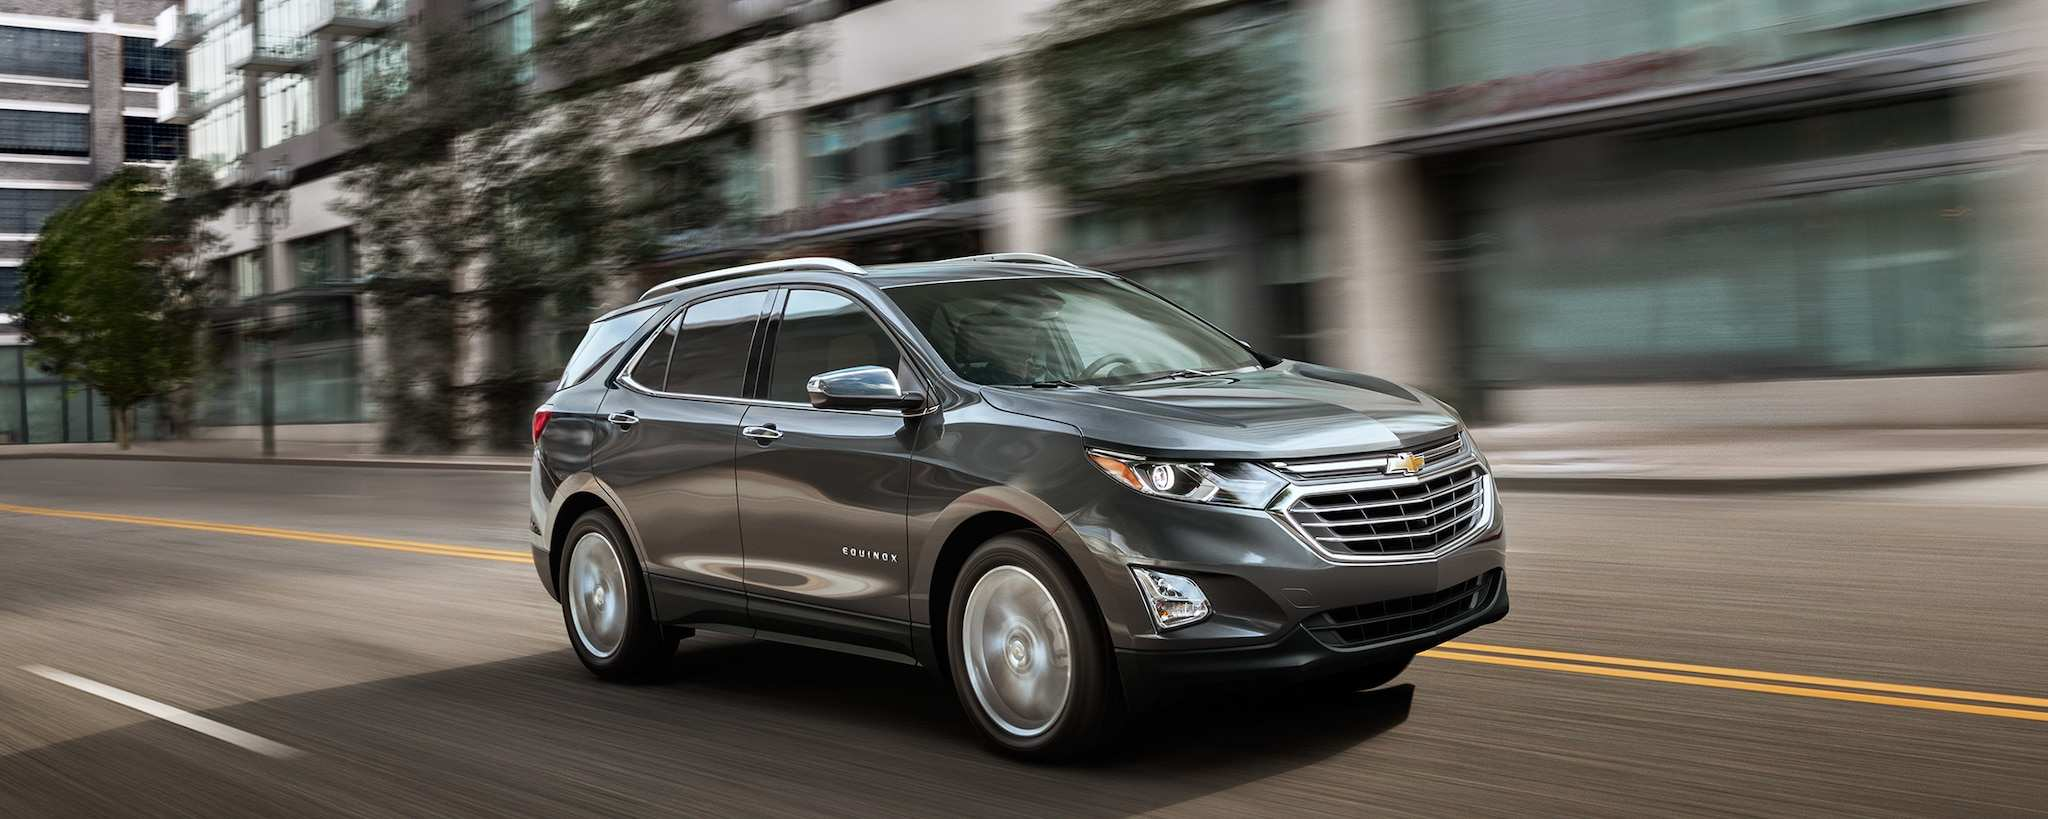 17 New 2019 Chevrolet Equinox Prices for 2019 Chevrolet Equinox